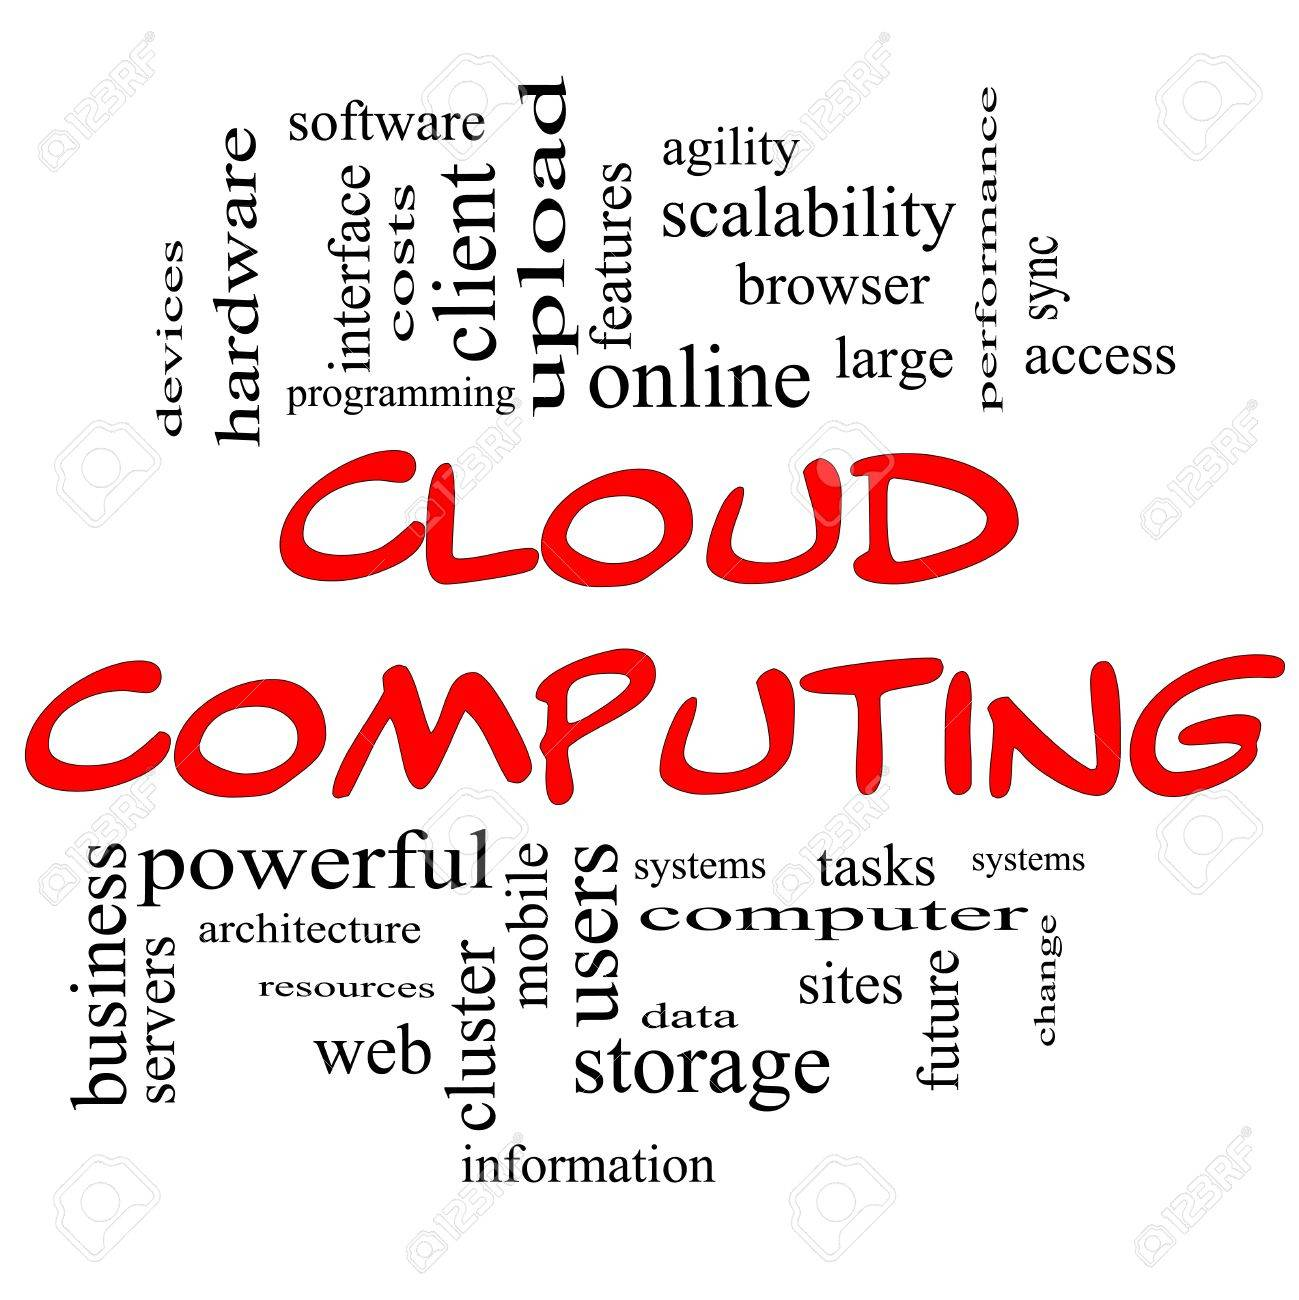 Cloud Computing Word Cloud Concept in red and black letters with great terms such as client, data, information, storage, sync, access, servers and more Stock Photo - 14947271